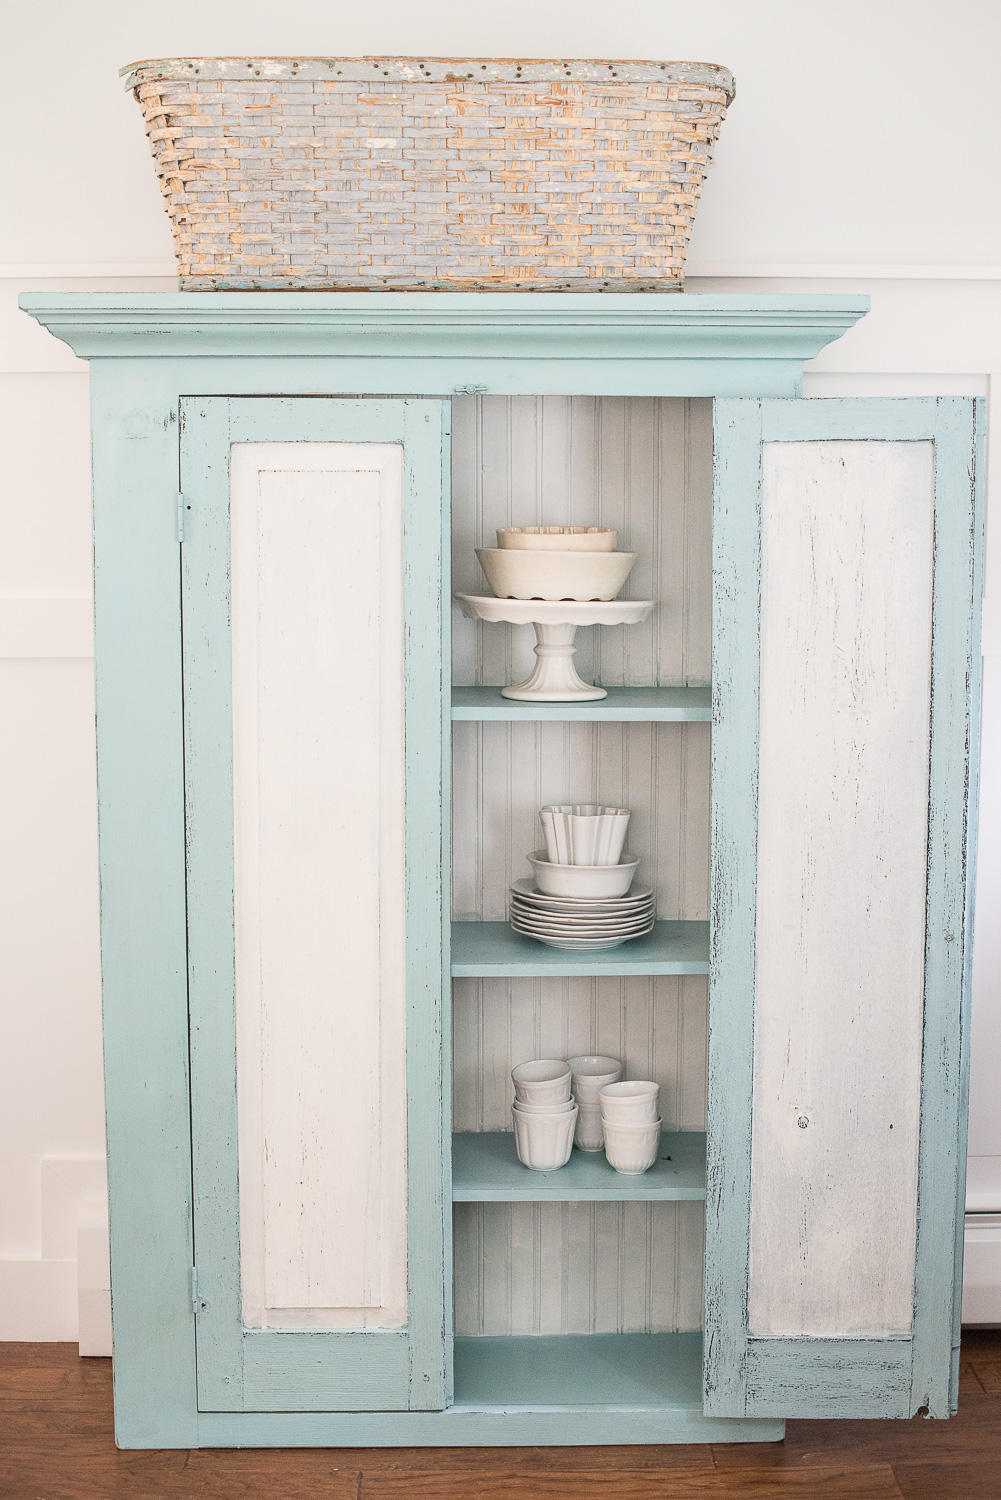 Hutch Painted in Miss Mustard Seed's Milk Paint in the Colour Eulalie's Sky